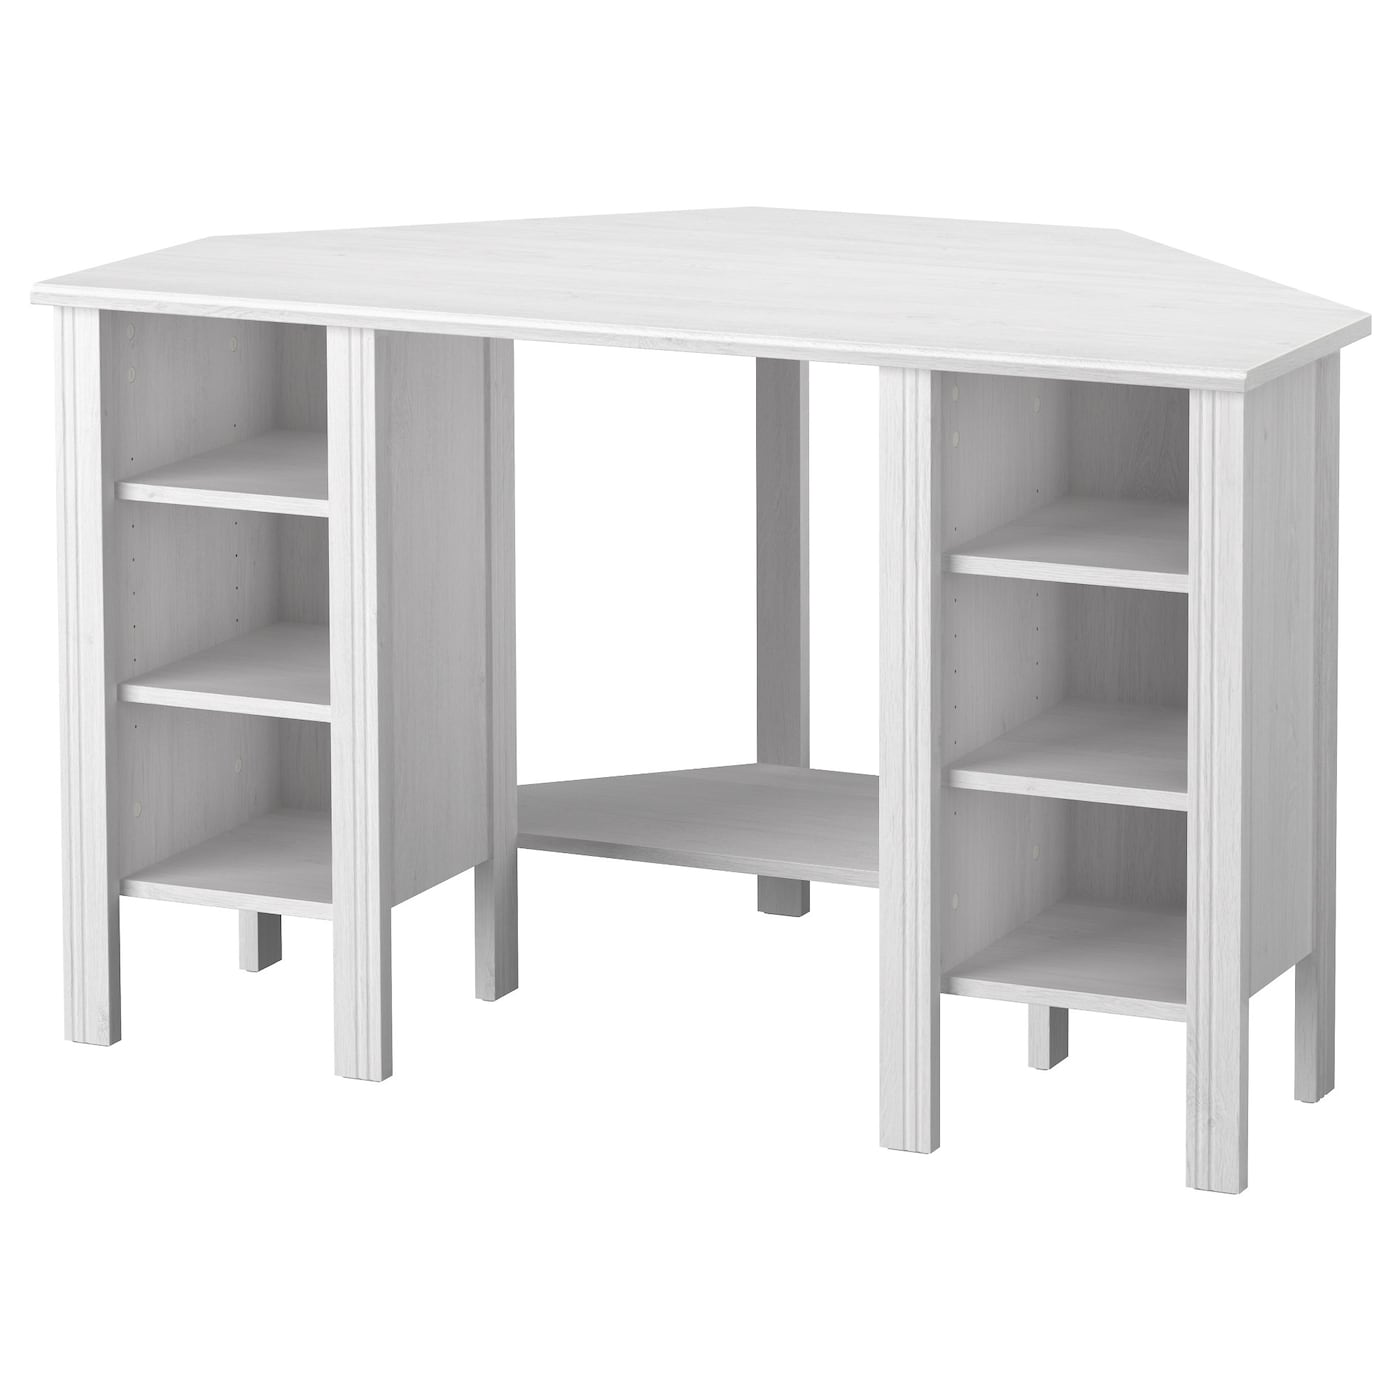 brusali corner desk white 120x73 cm ikea. Black Bedroom Furniture Sets. Home Design Ideas